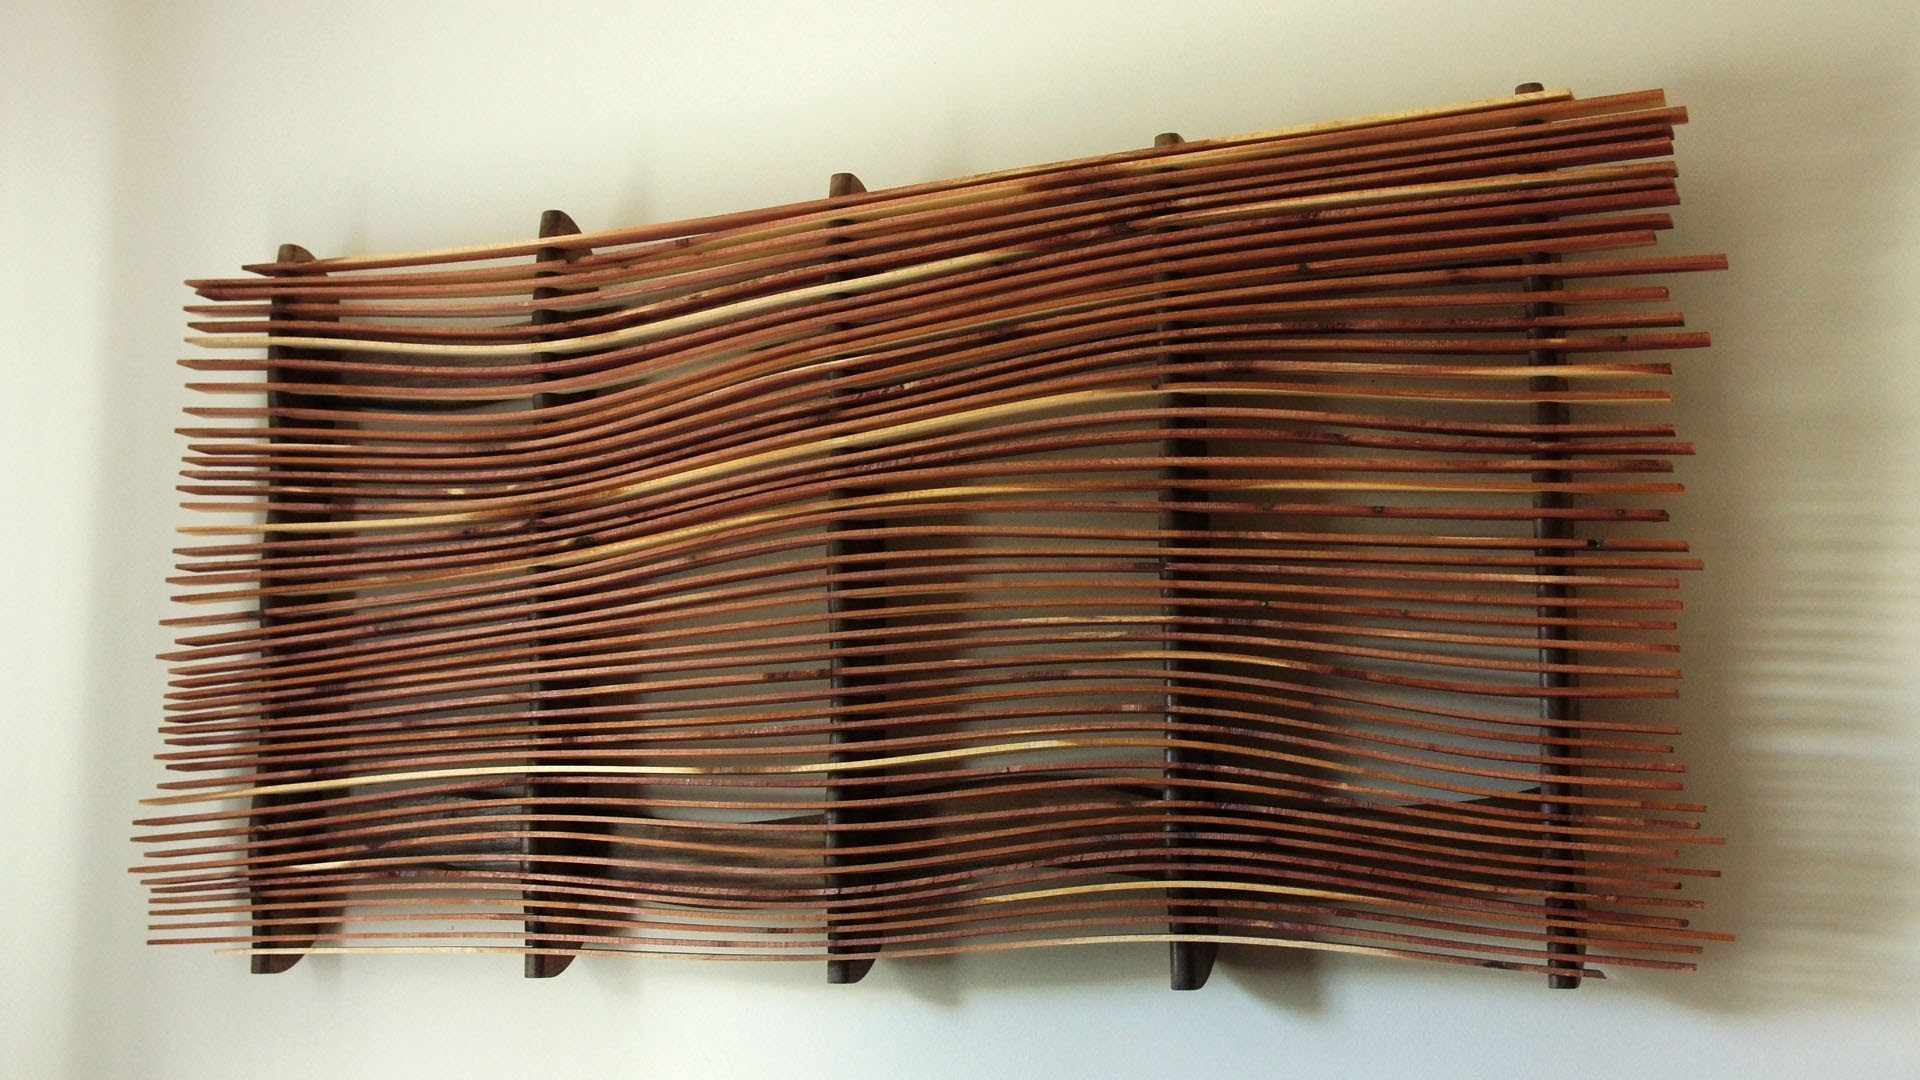 Wall Art From Scrap Wood – Youtube With Most Up To Date Wooden Wall Art (Gallery 1 of 15)